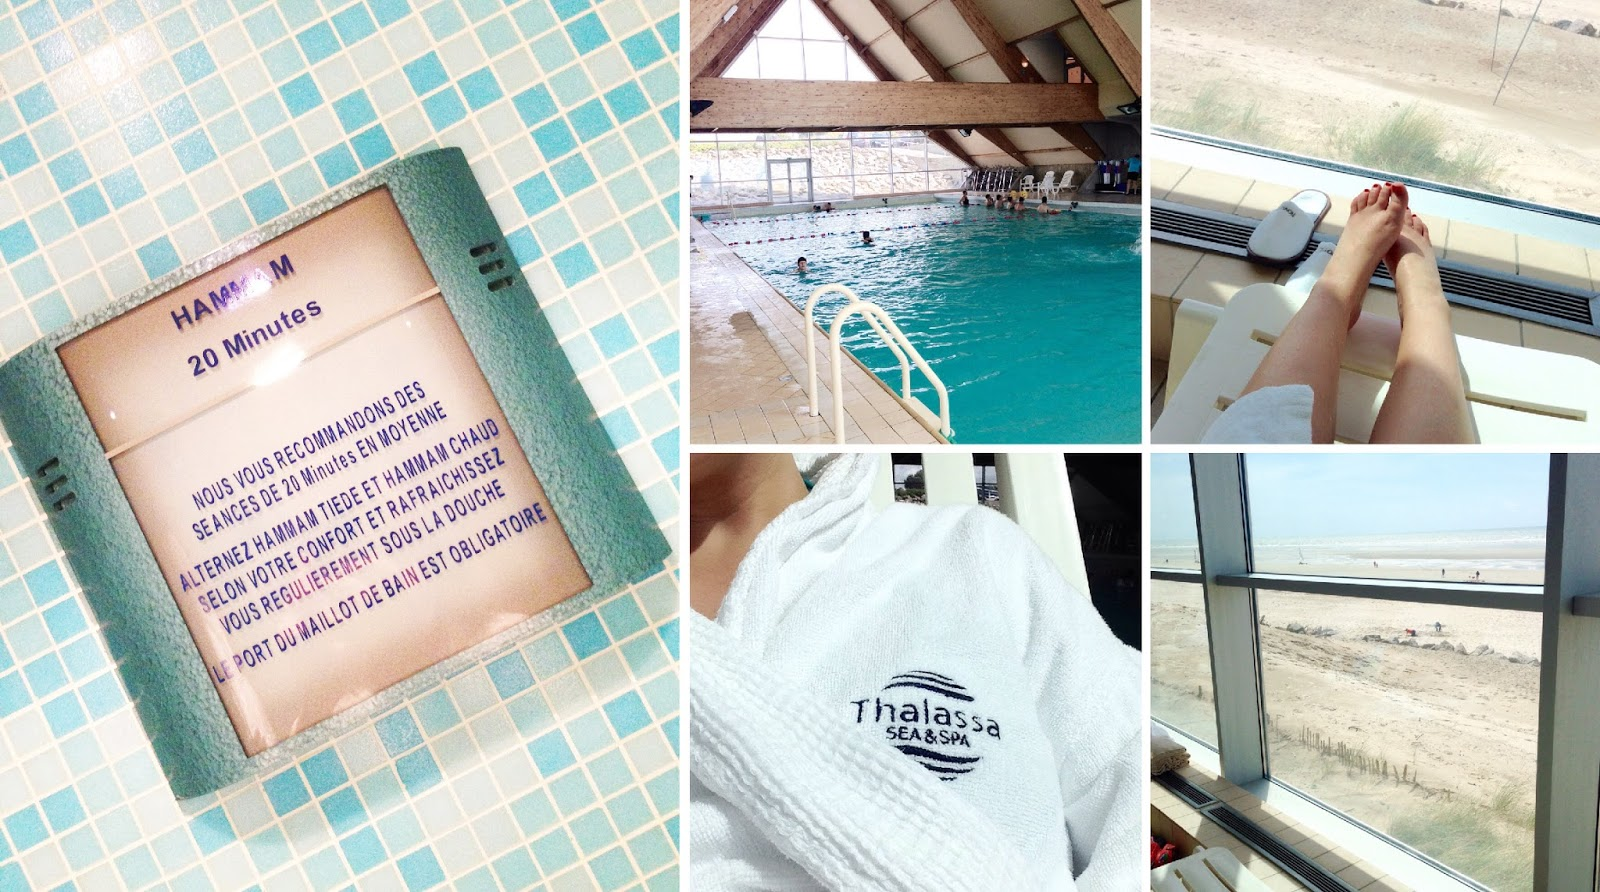 Un week end au novotel thalassa sea spa avec elle for Hotel touquet avec piscine